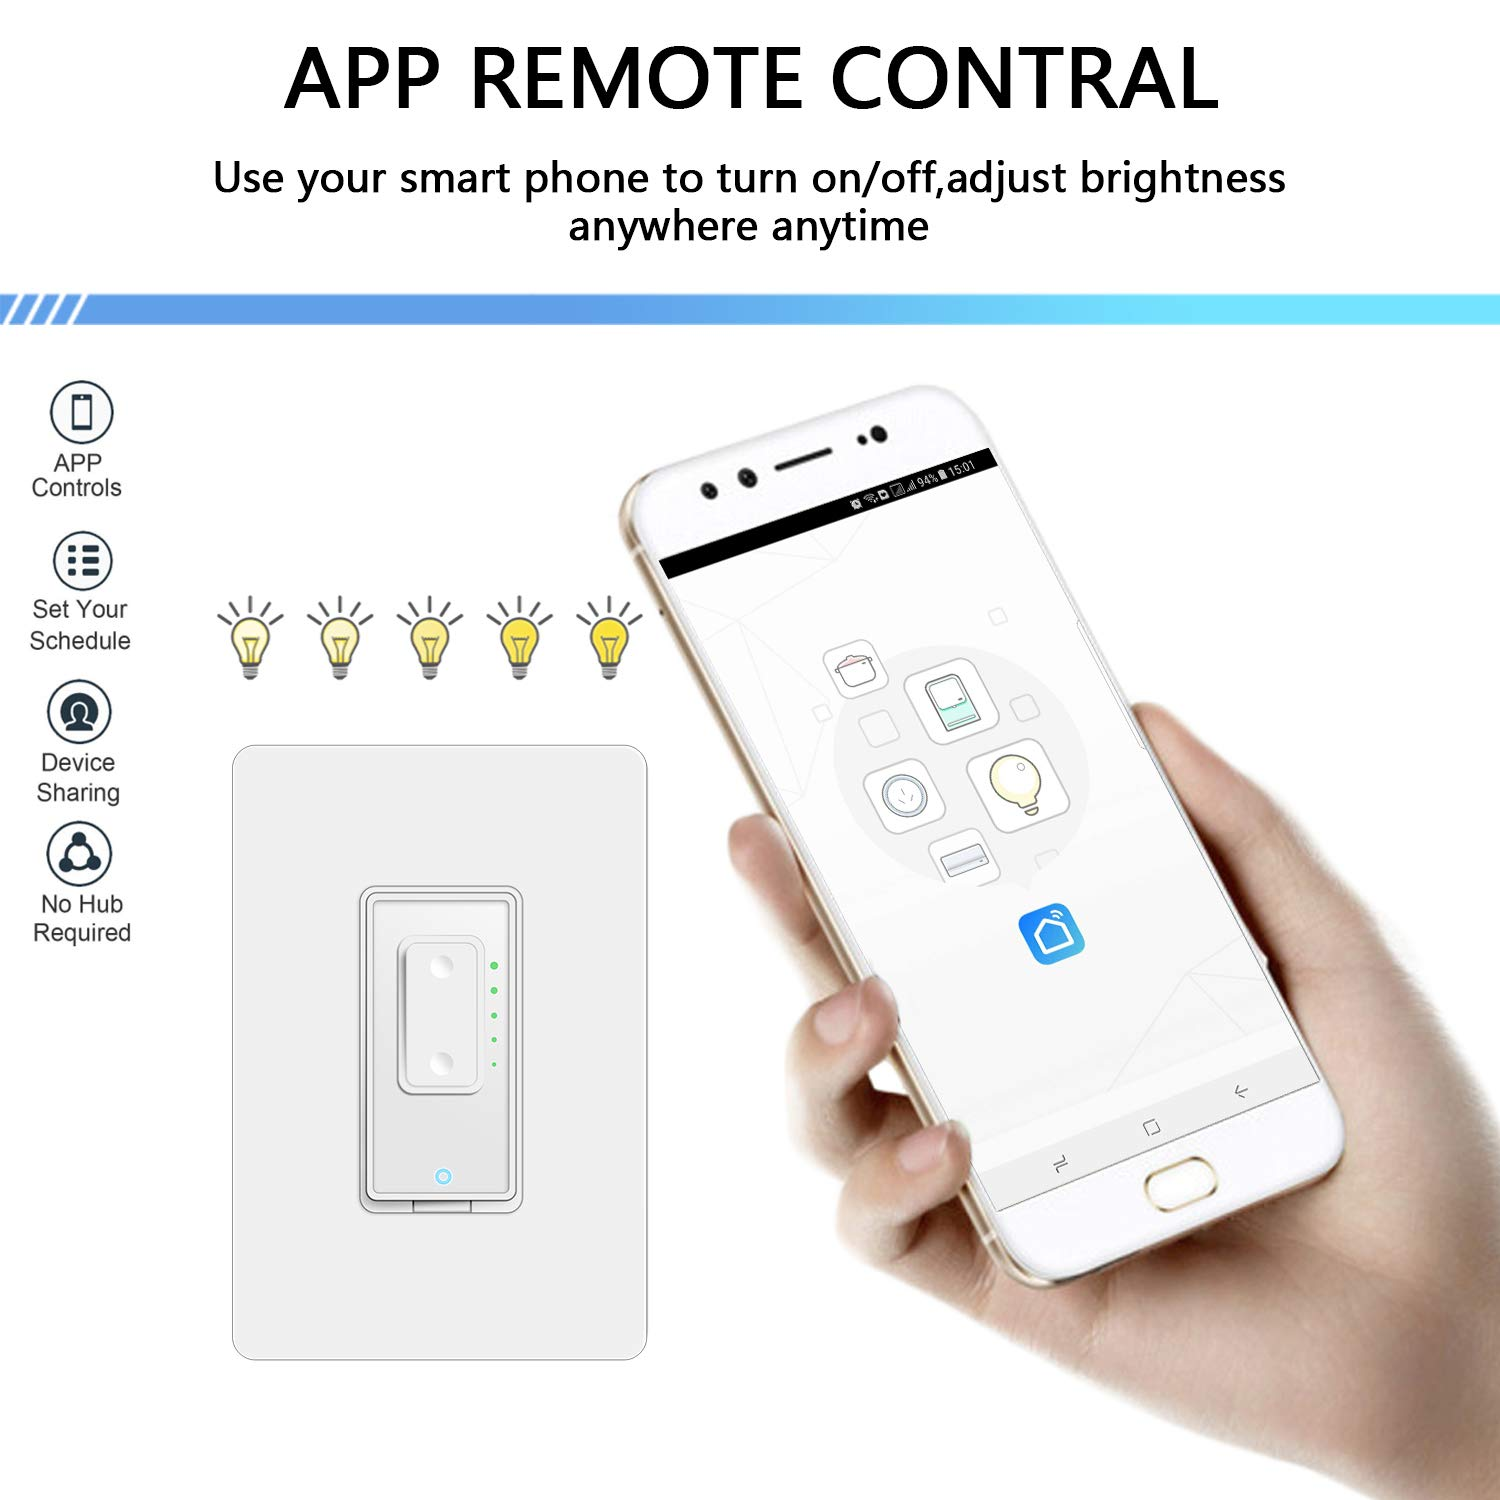 Details about Smart Dimmer Switch by Martin Jerry | SmartLife App, Mains  Dimming ONLY,